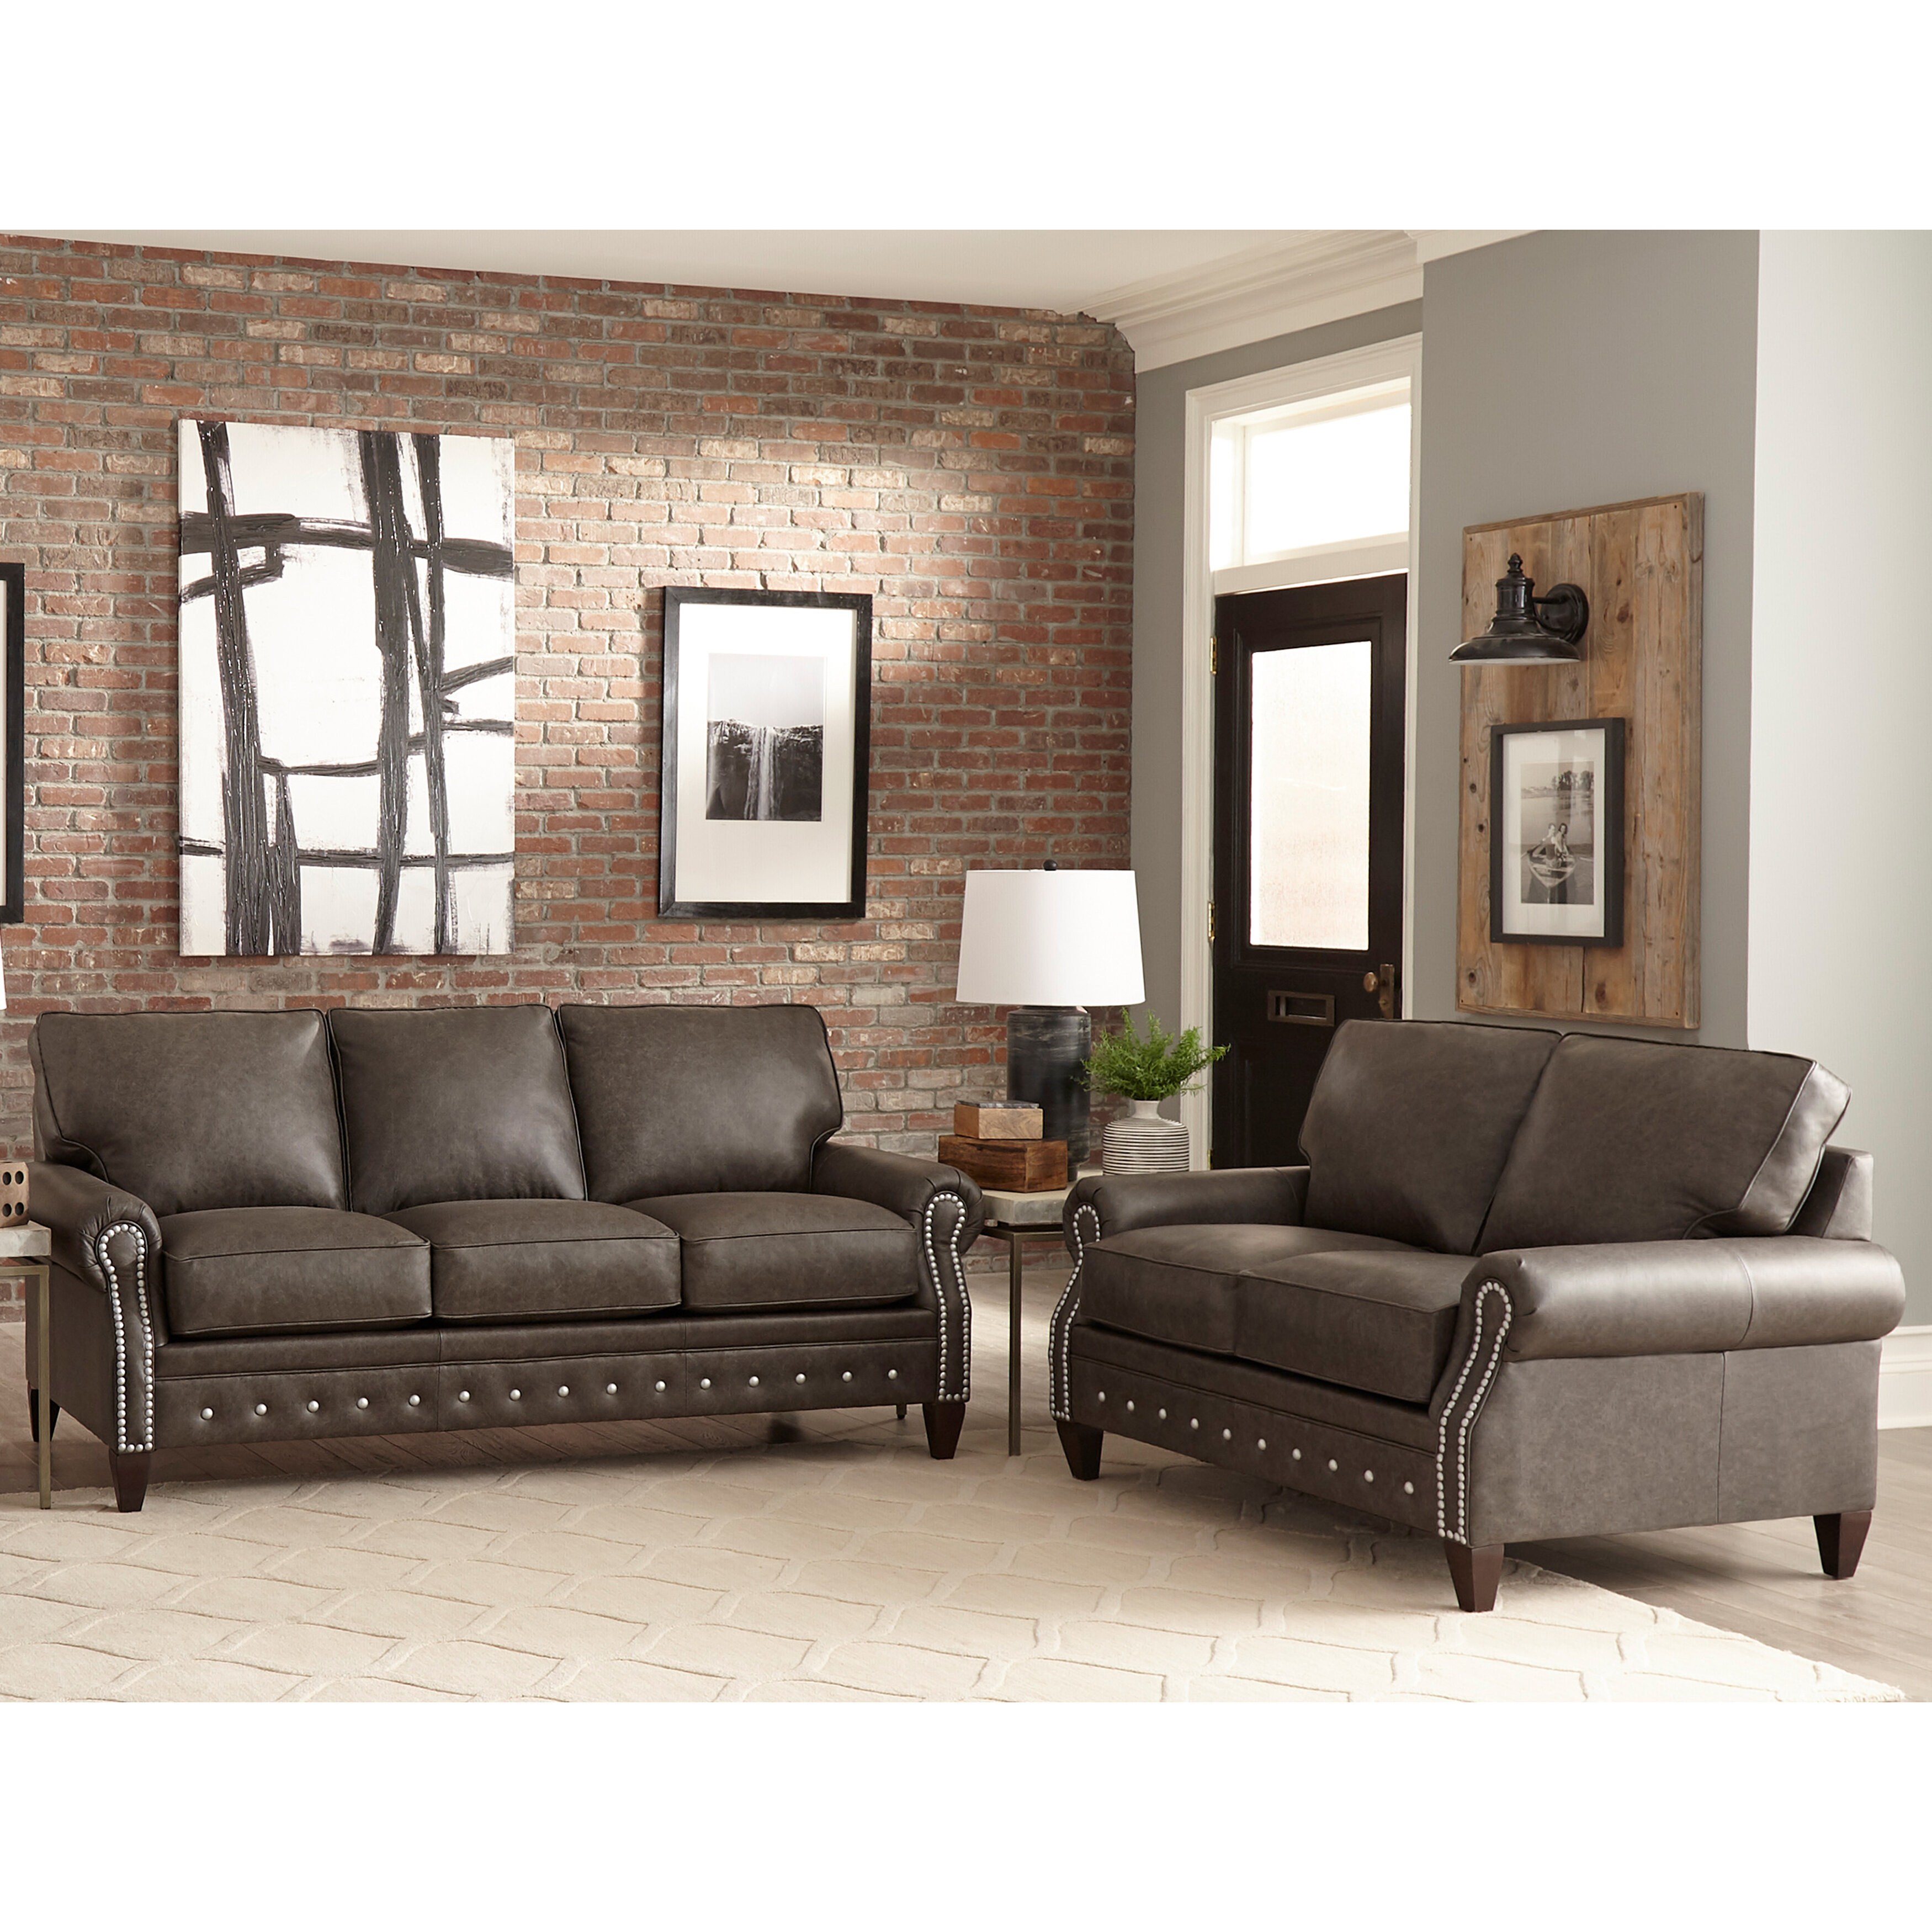 Jacey 10 Piece Leather Sleeper Living Room Set